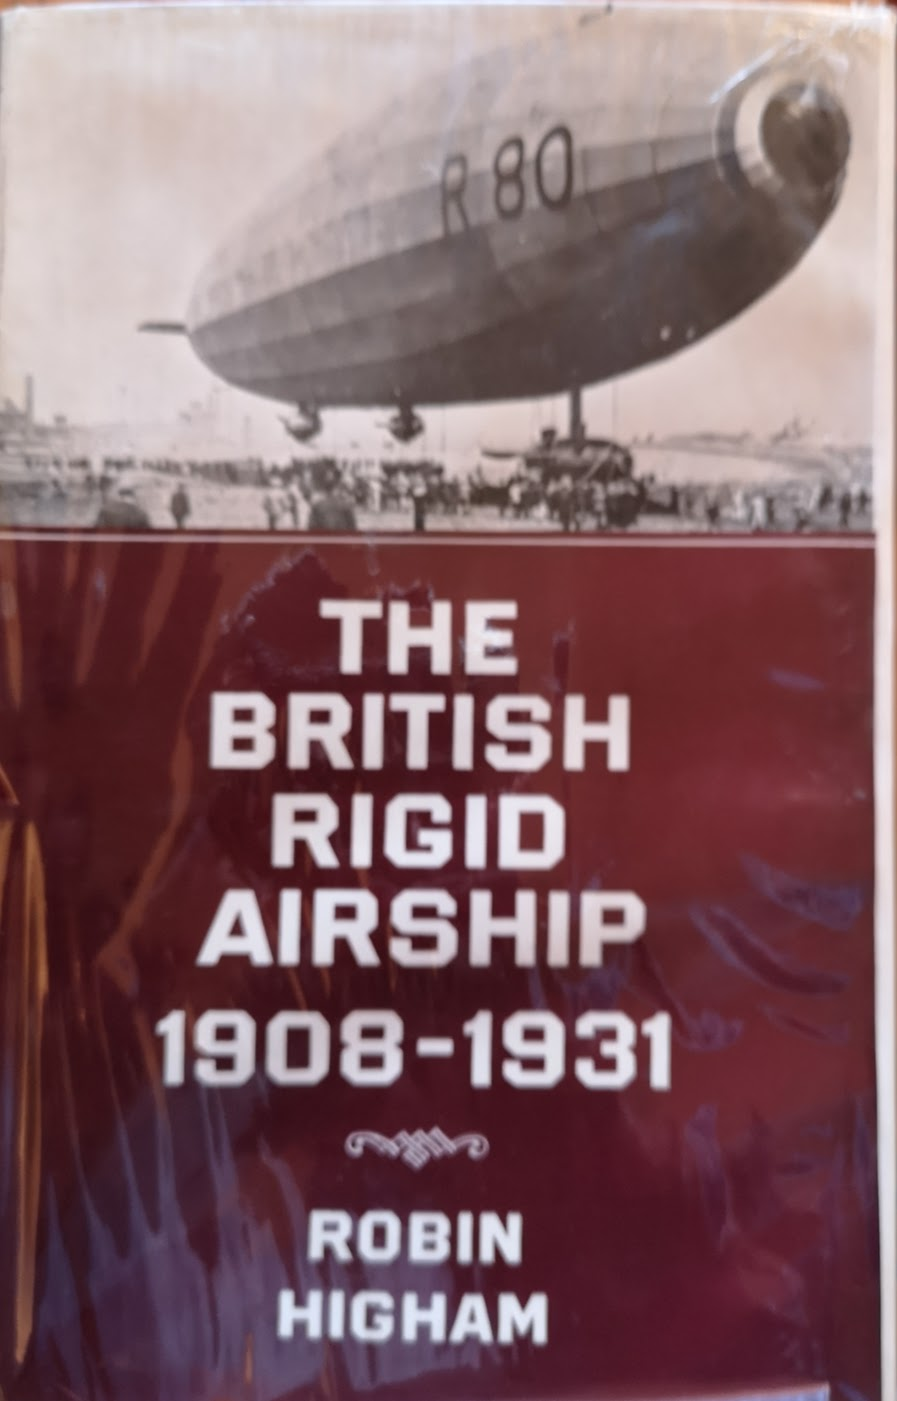 The Britsih Rigid Airship 1908-1931